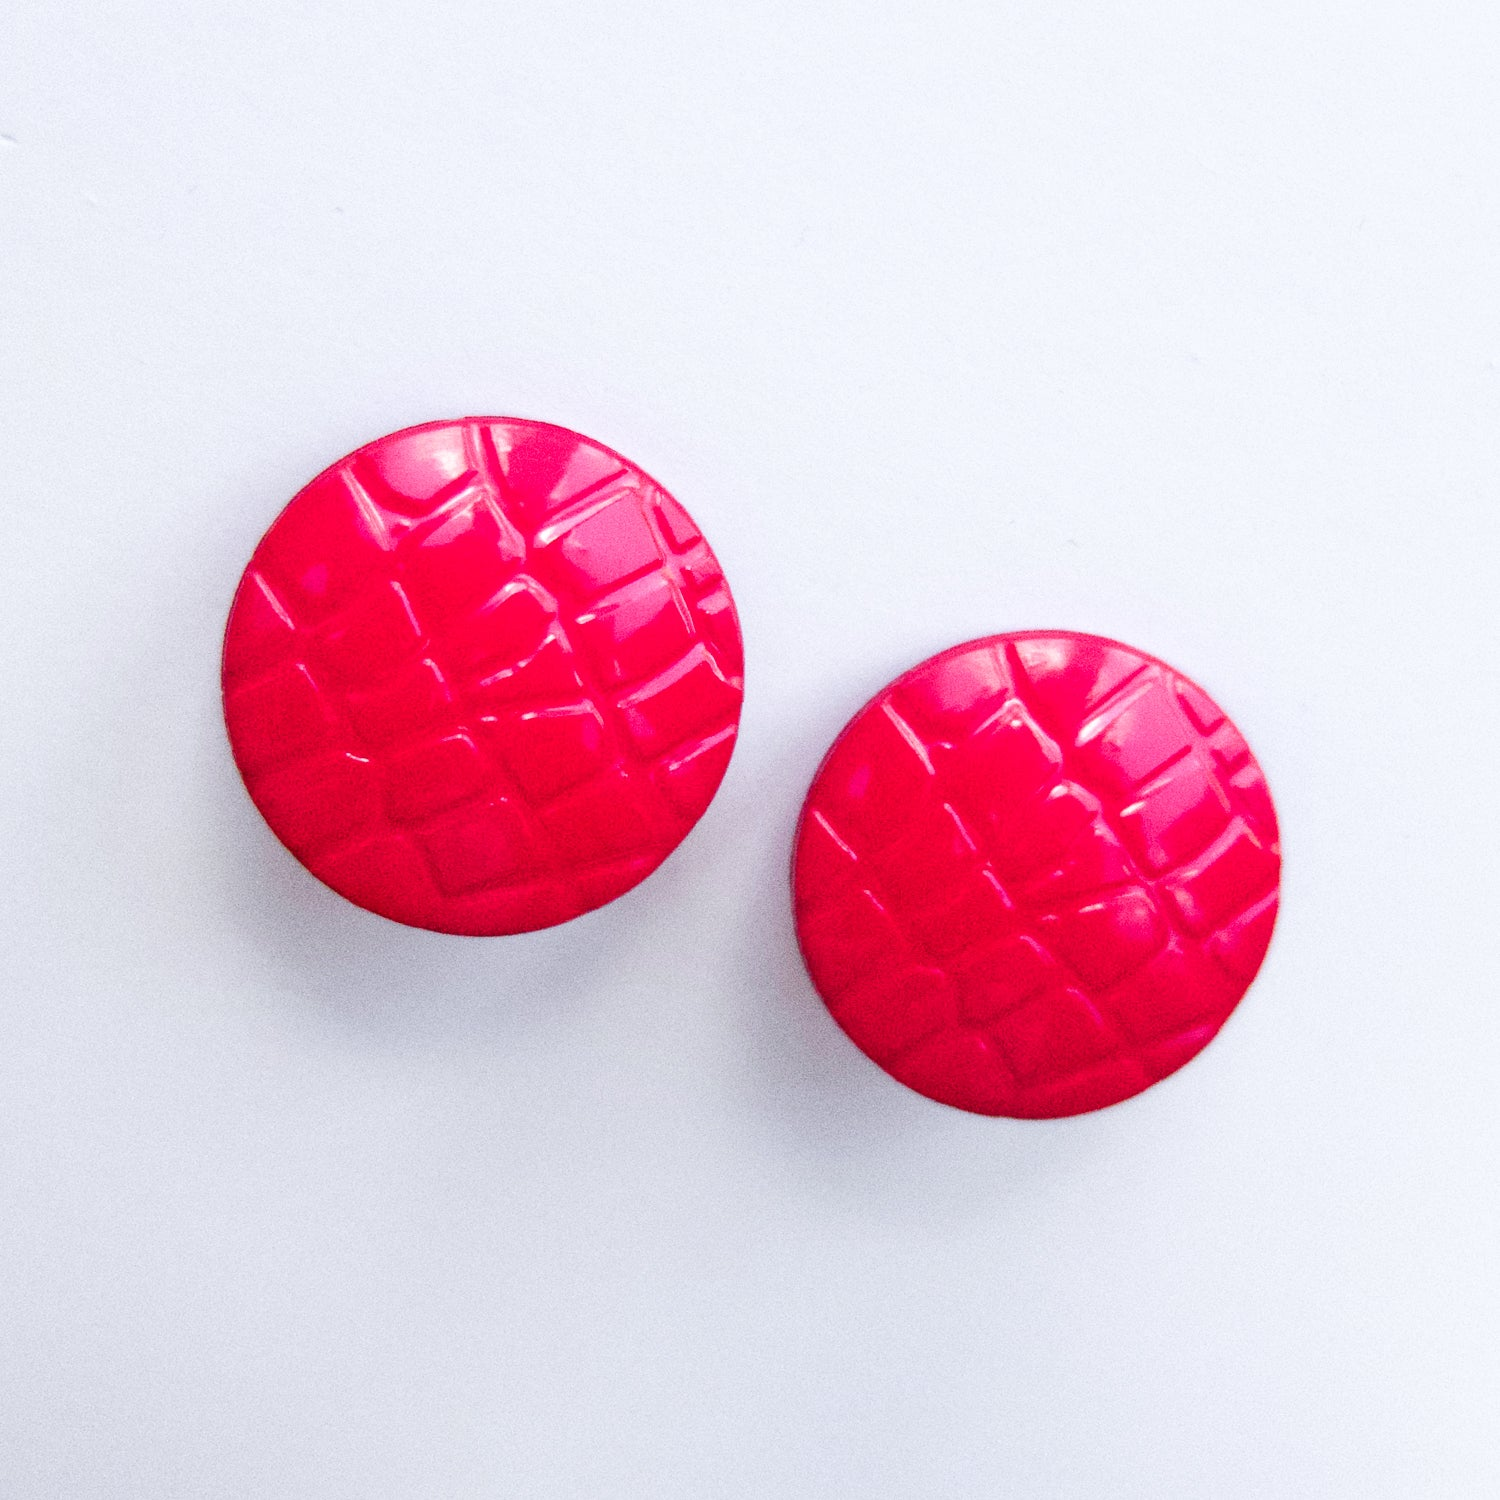 "Second Room Vintage Clothing. Vintage red round stud earrings with crocodile print. Note that these earrings have a flexible plastic post; not a metal one. These earrings are 1"" round. Free North American shipping on all orders."